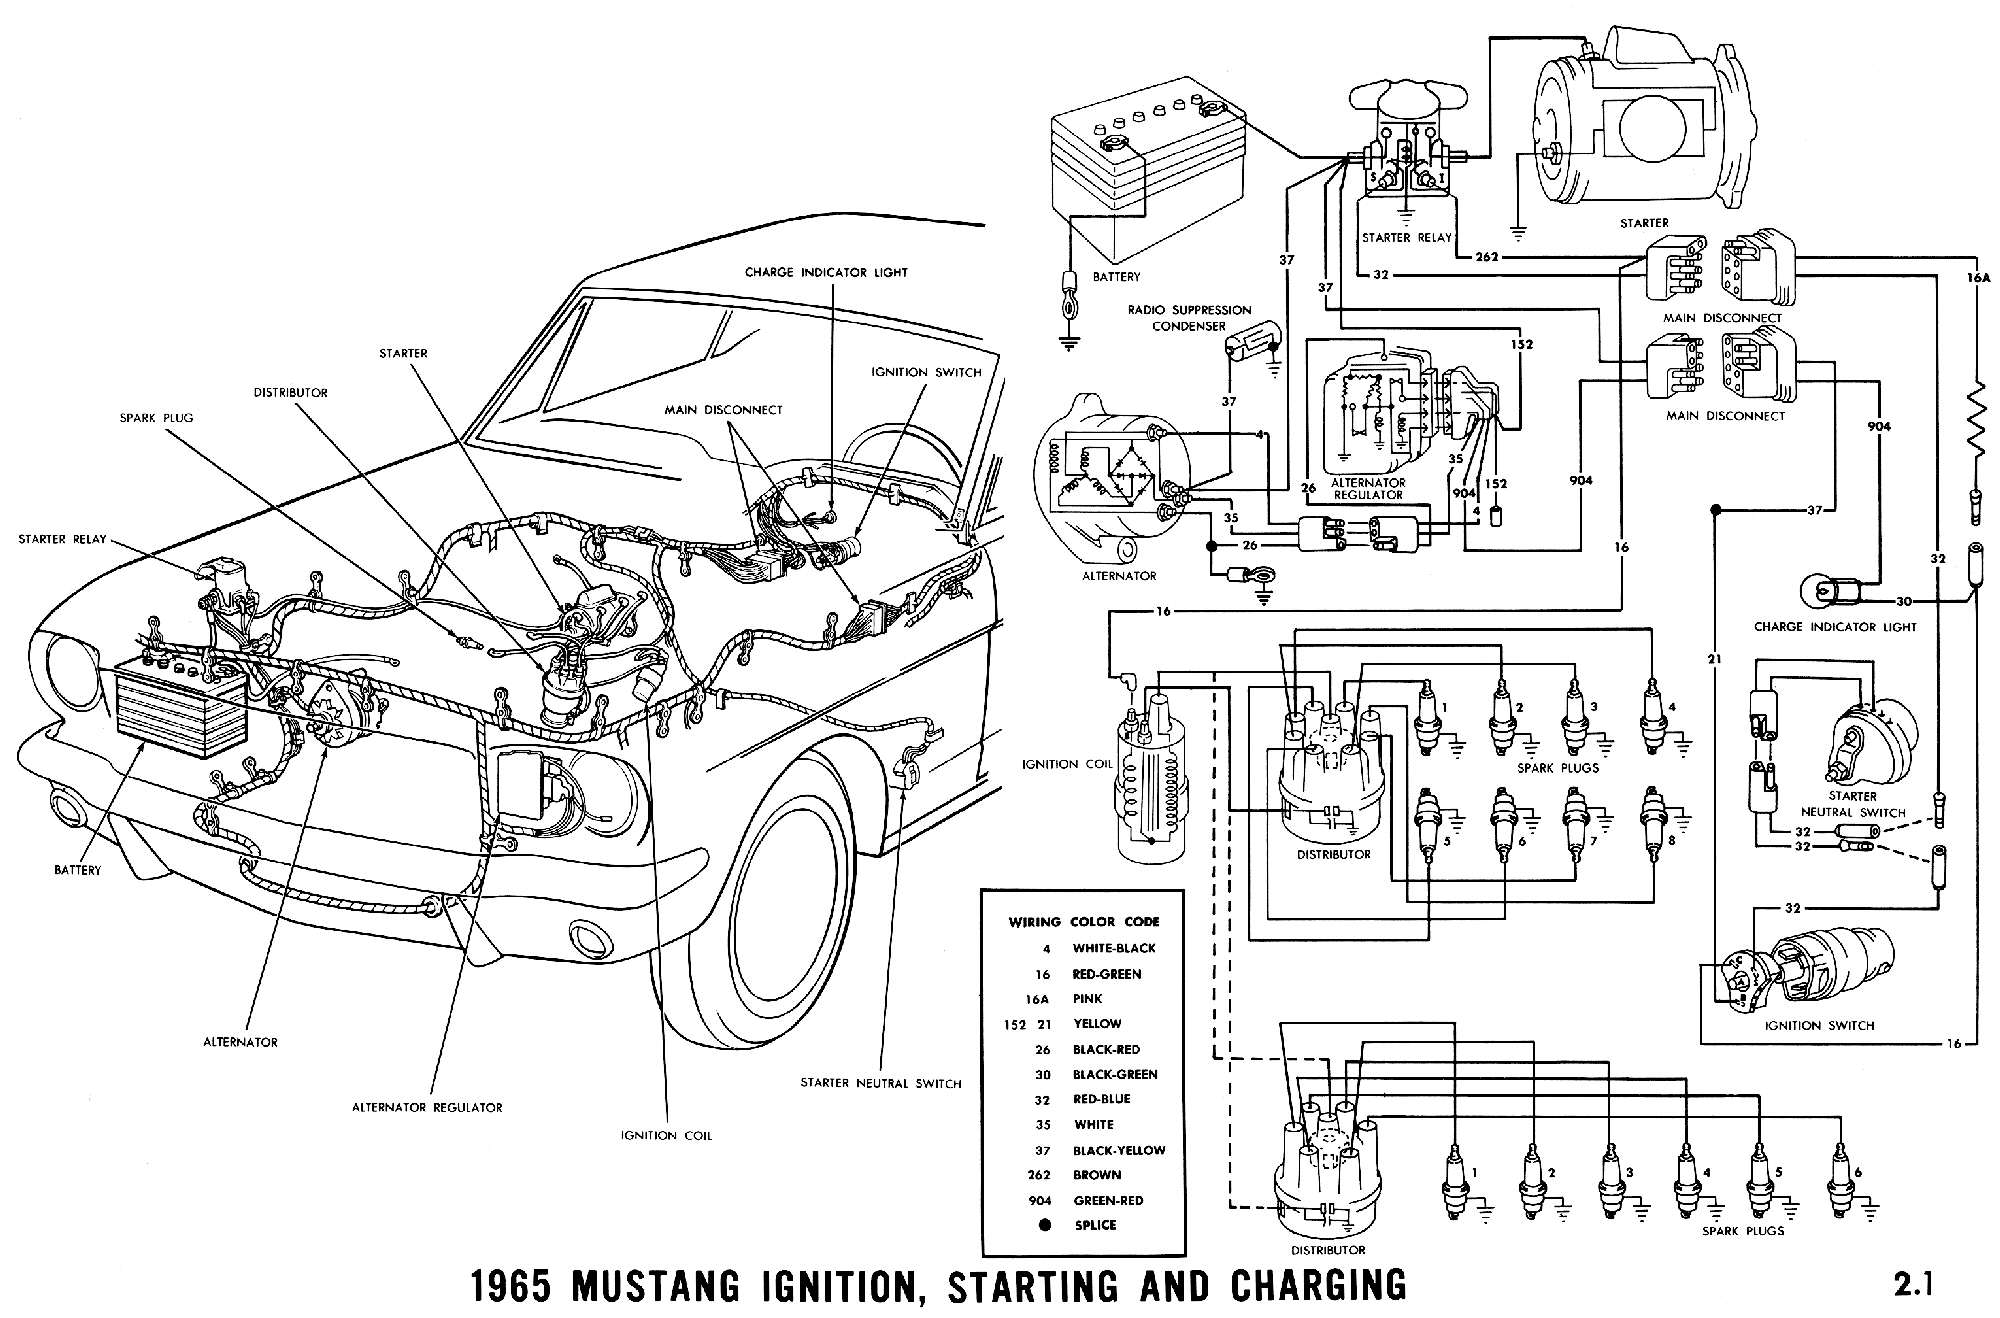 1965c 1965 mustang wiring diagrams average joe restoration 1968 ford mustang wiring diagram at n-0.co